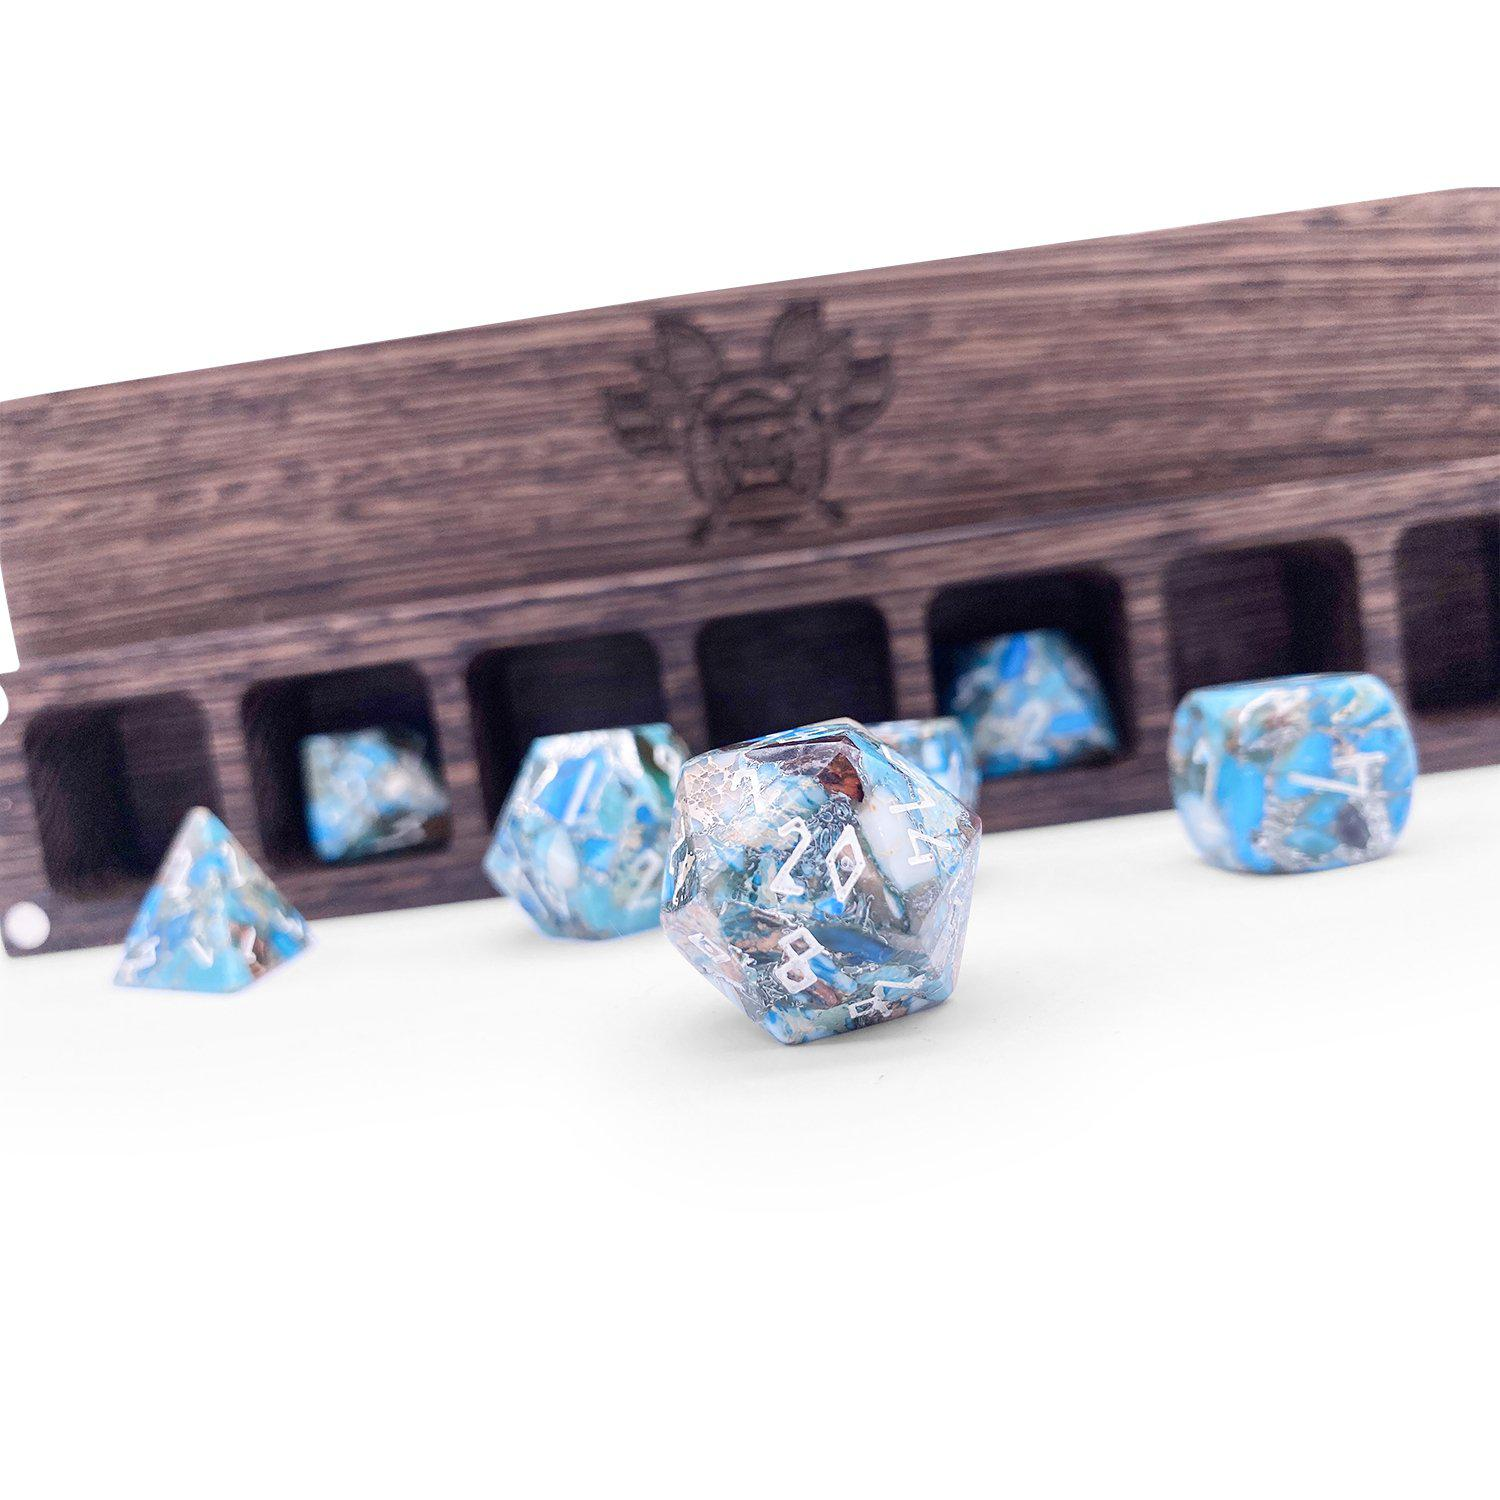 Silver Blue Imperial Jasper TruStone 7 Piece RPG Dice Set Gemstone